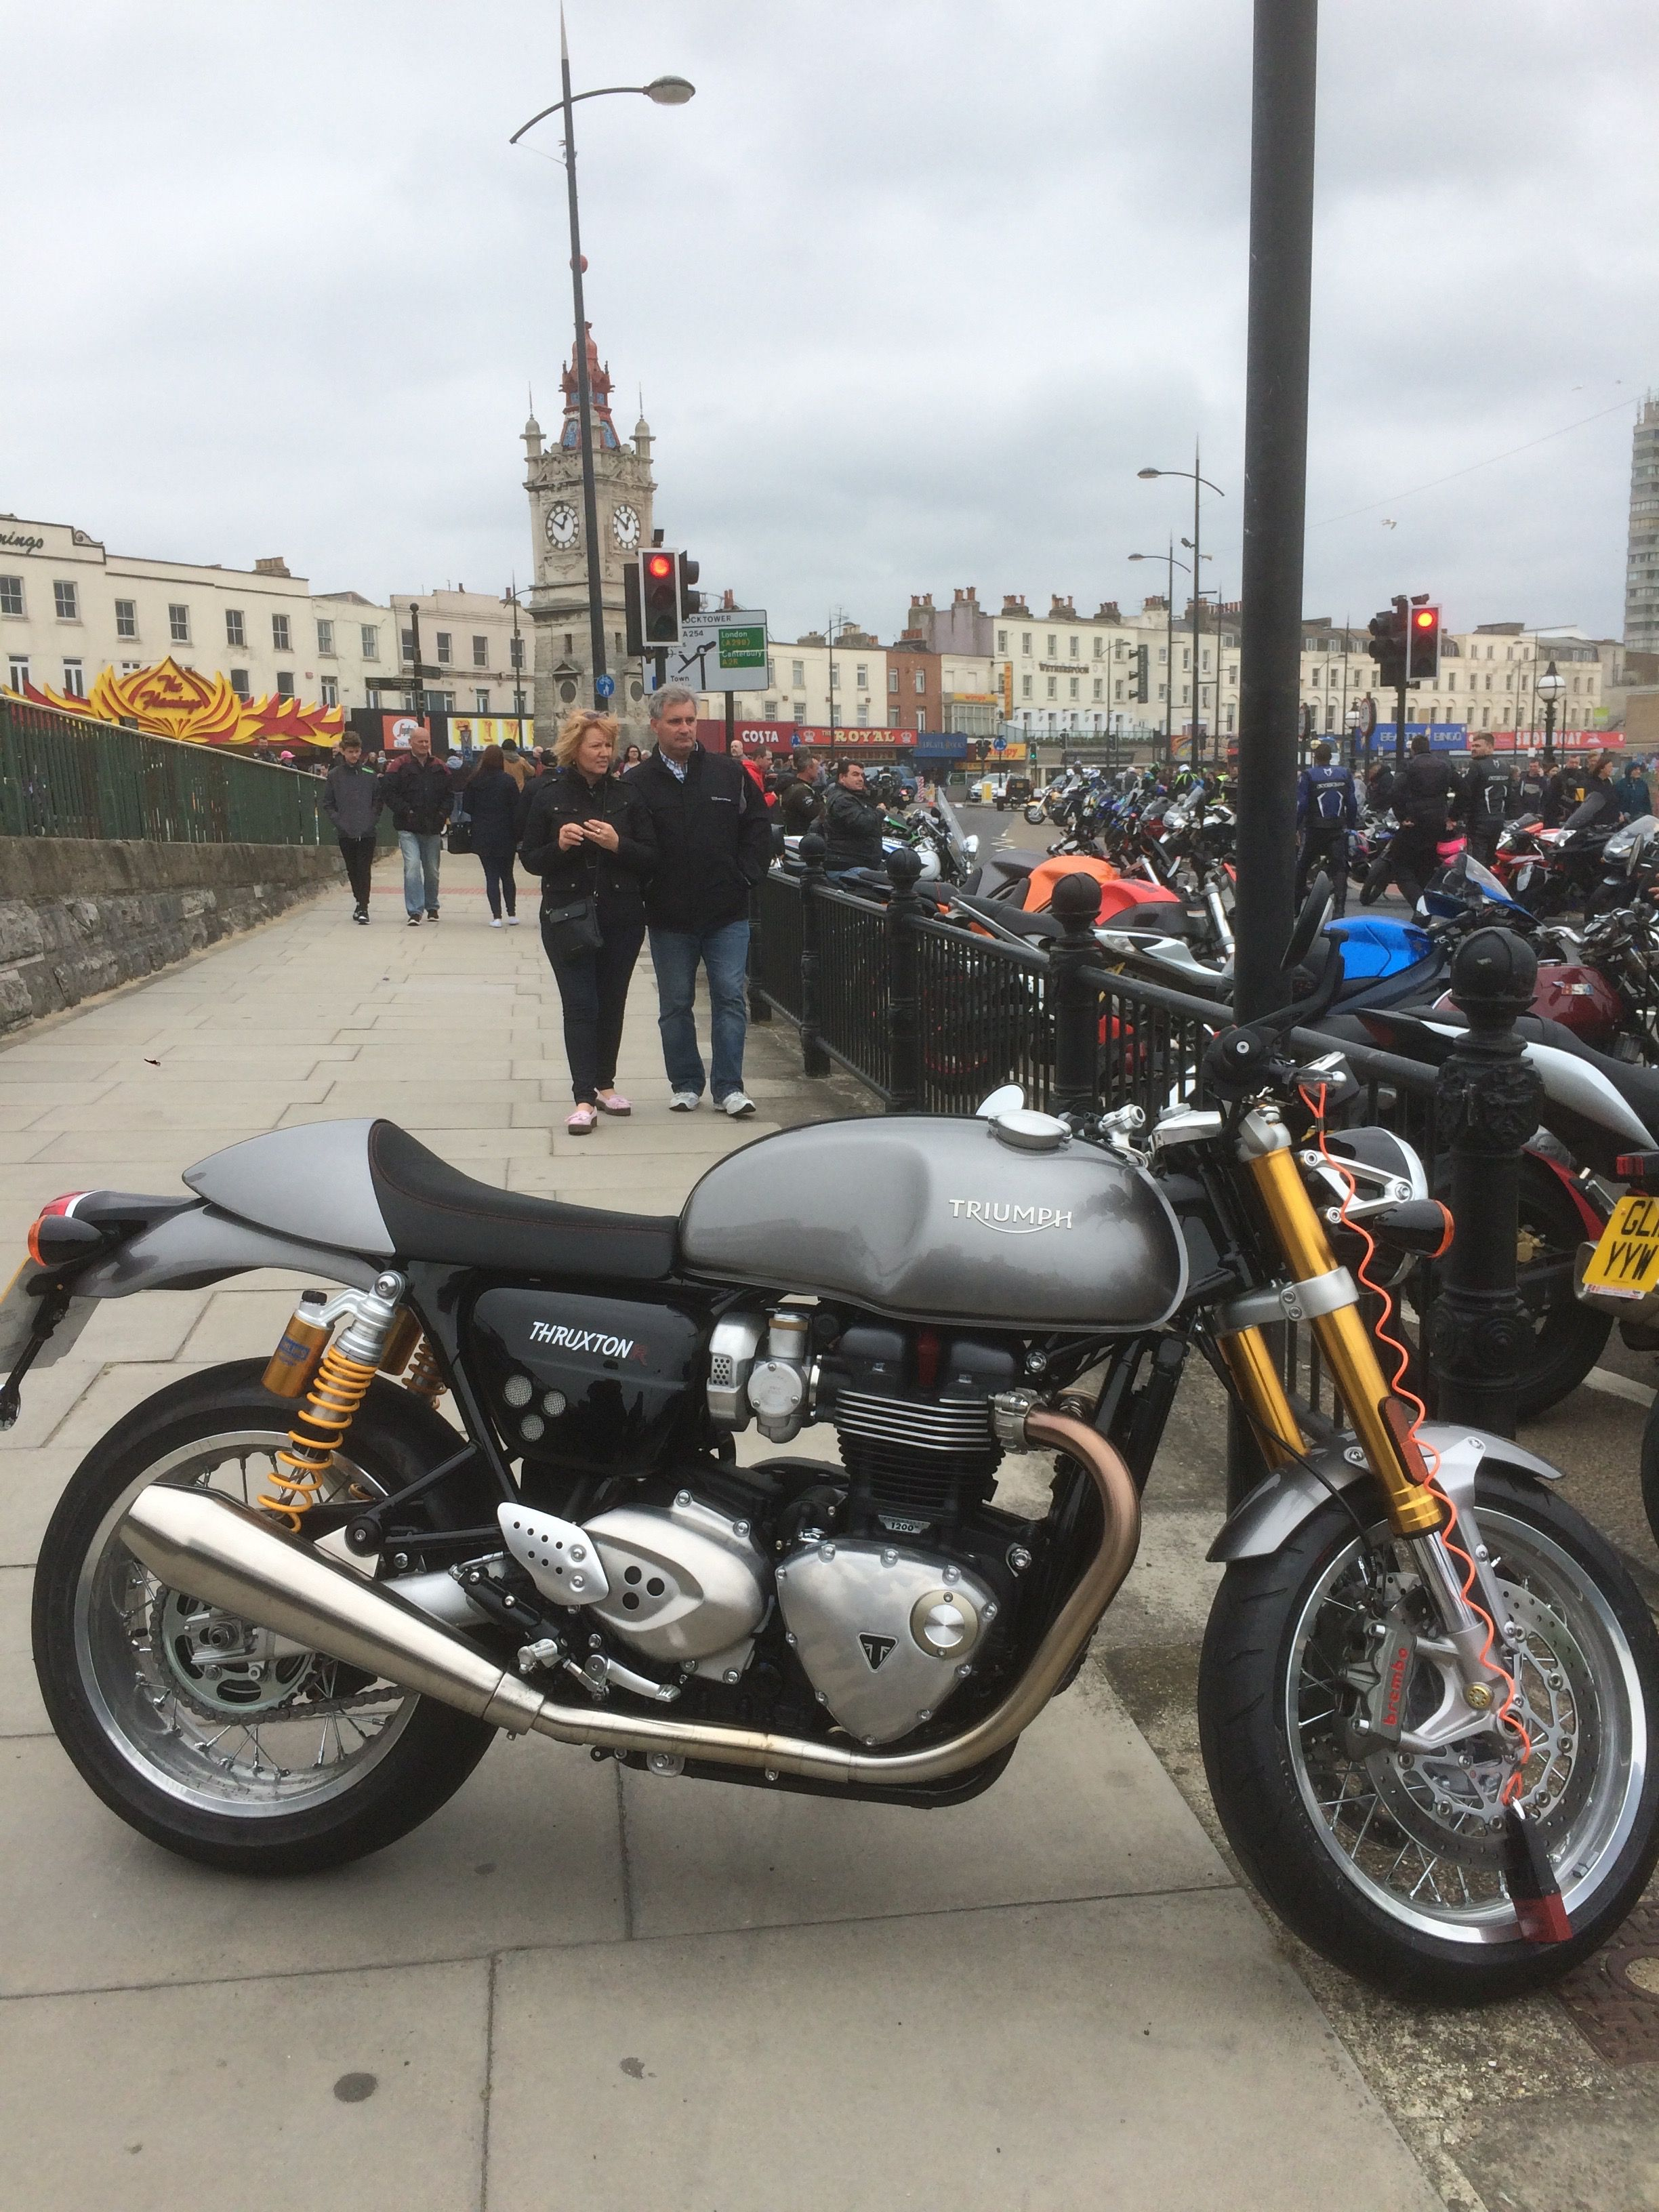 Triumph Thruxton at Margate Meltdown